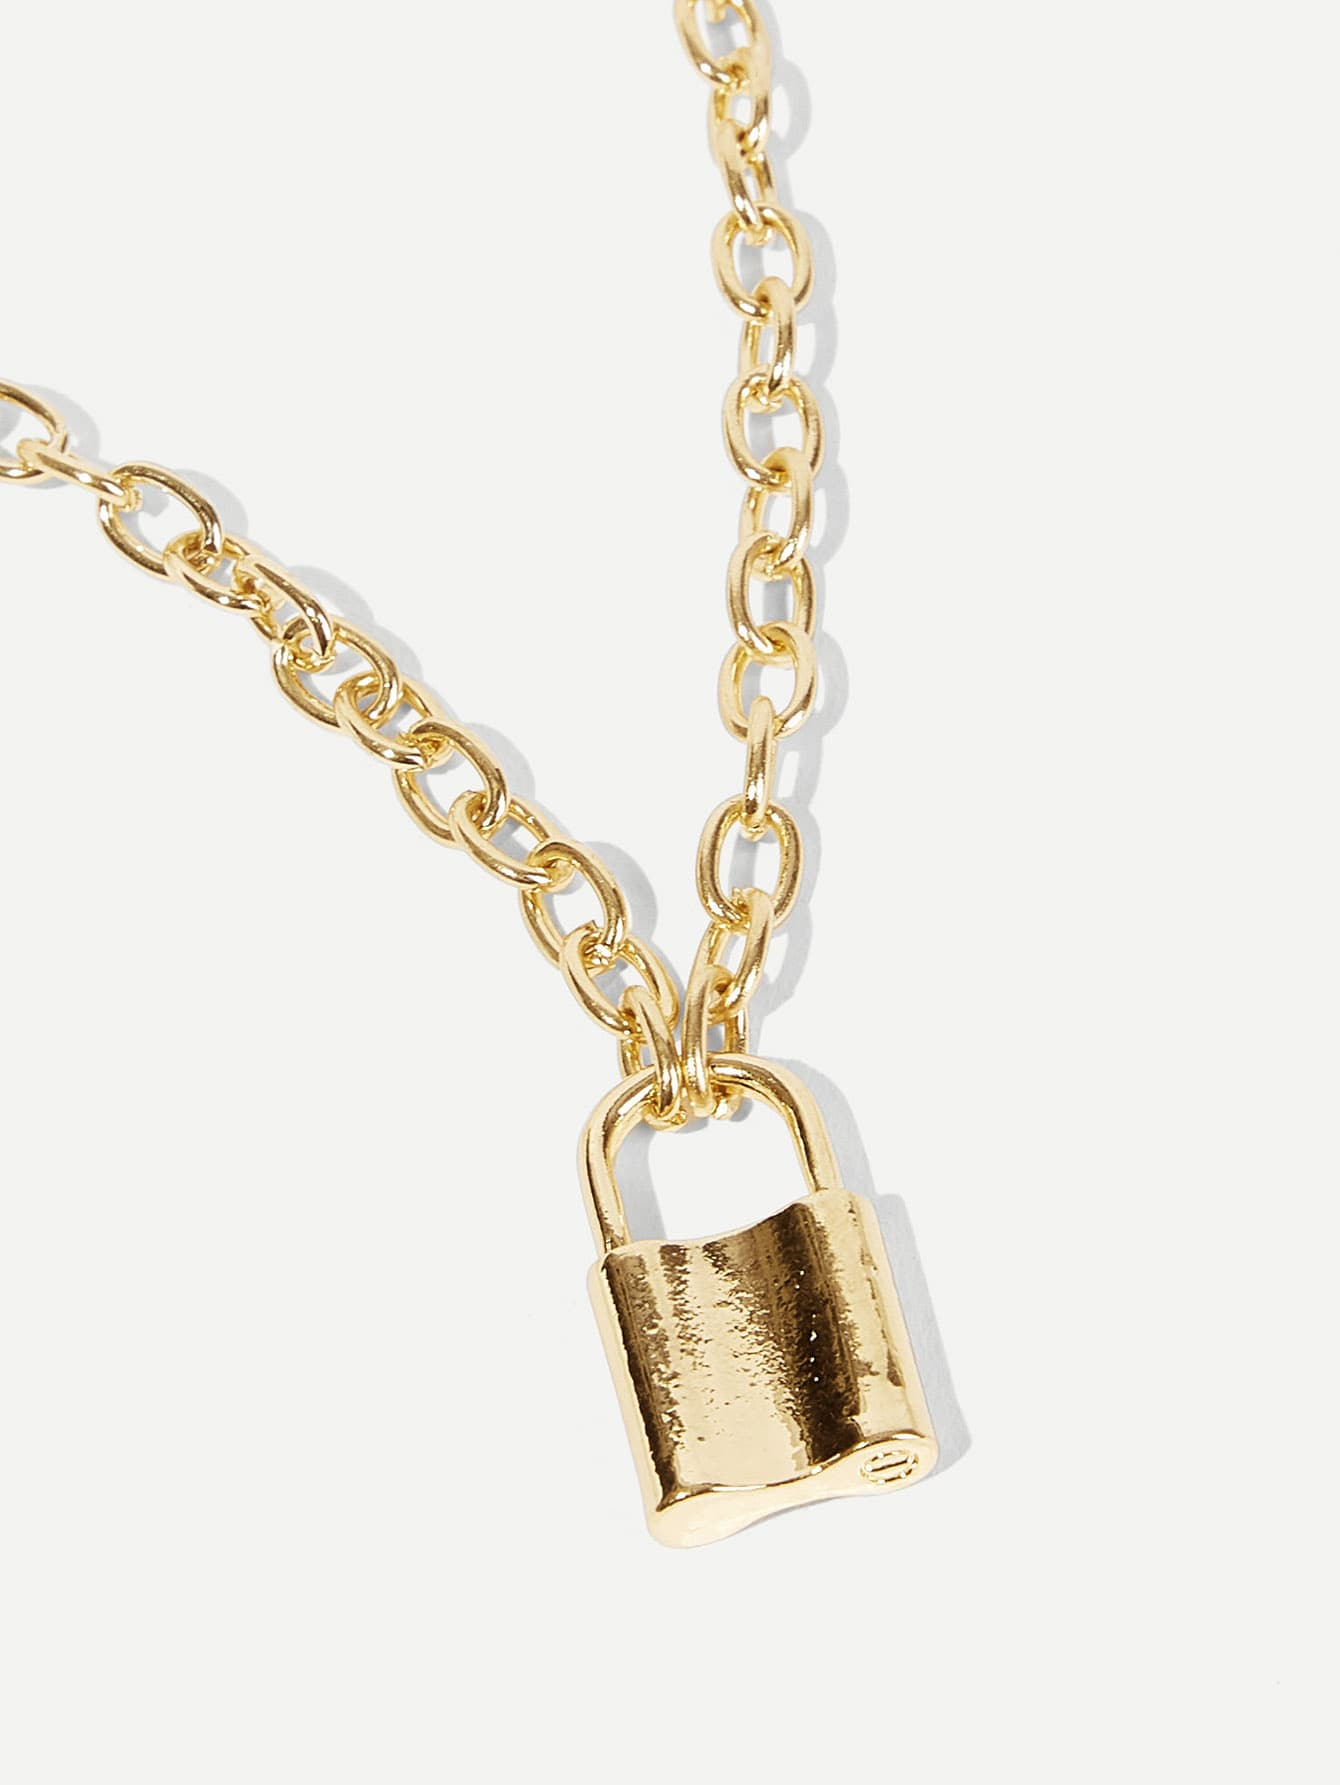 Lock Pendant Chain Necklace 1pc - shopnsave.pk